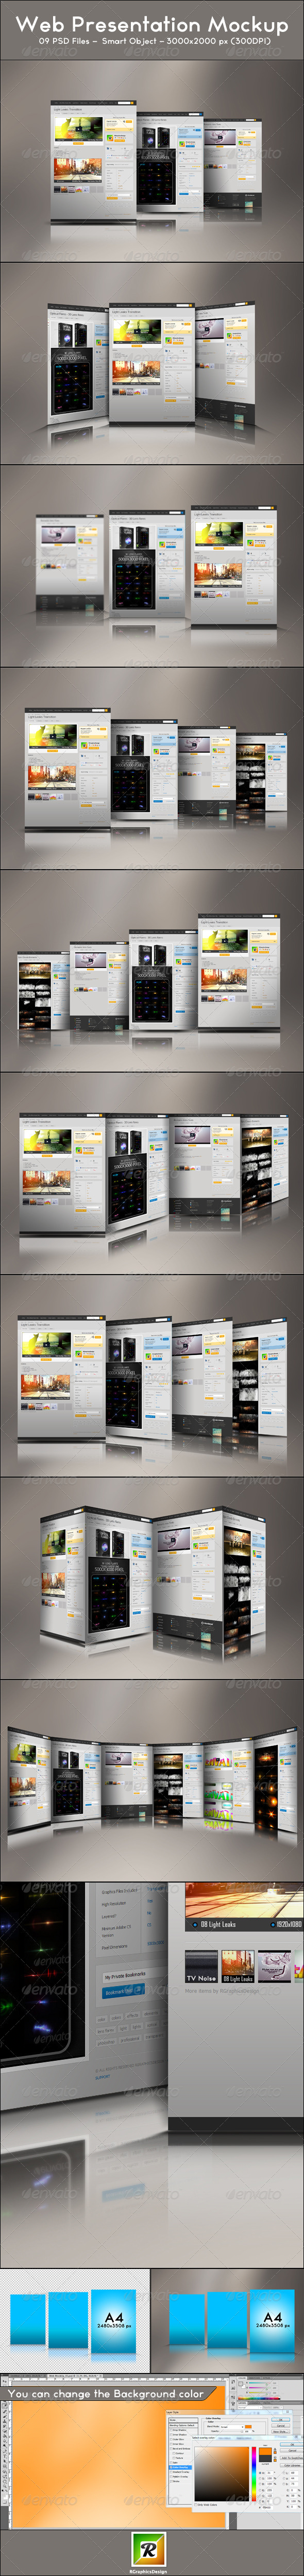 GraphicRiver Web Presentation Mockup 5458446